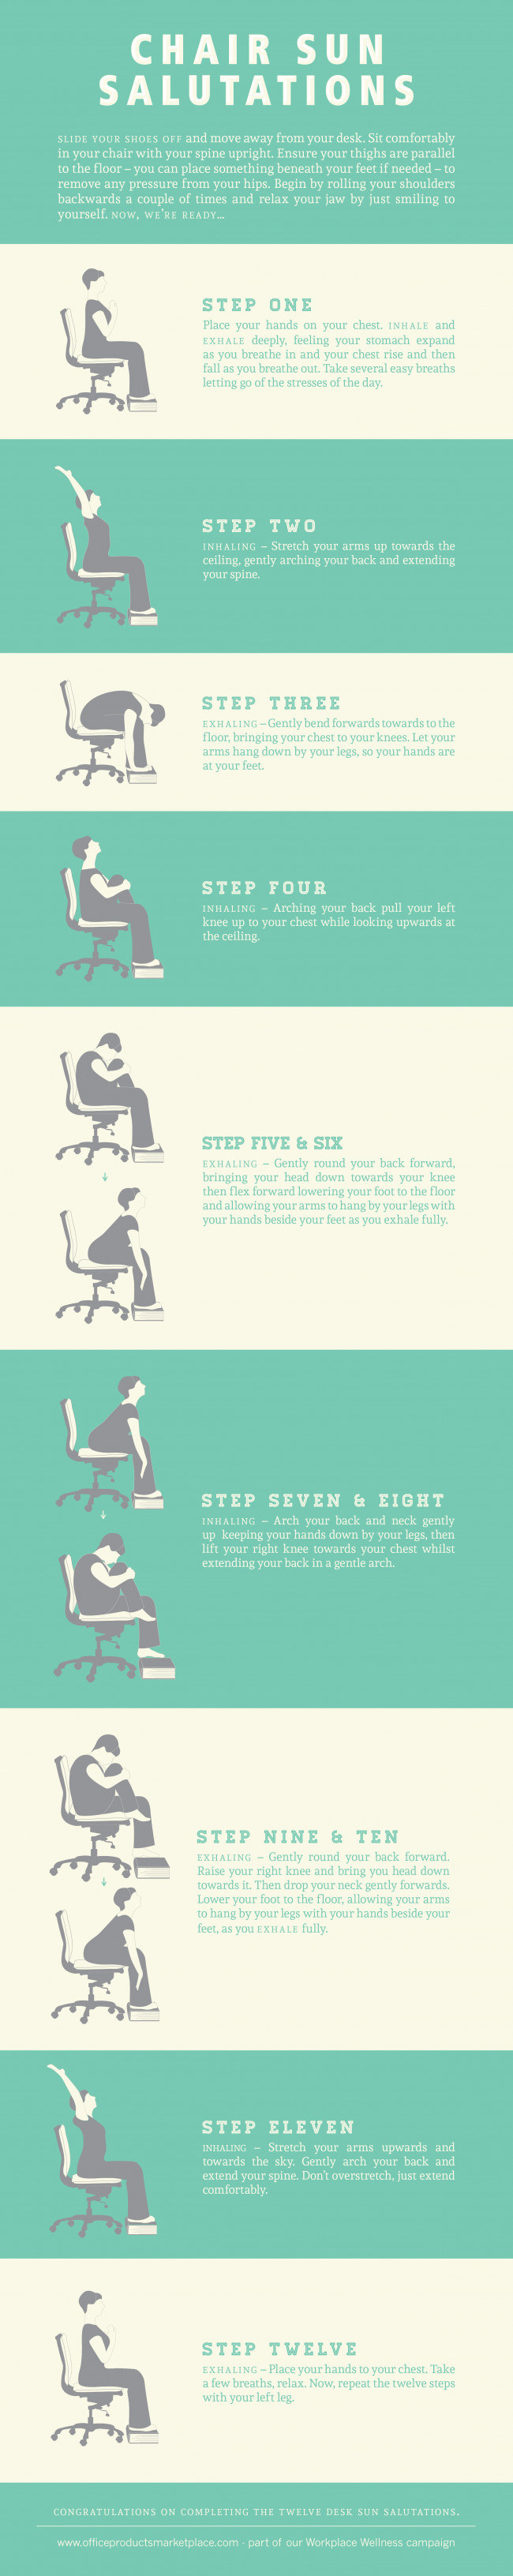 Sun Salutations at Your Desk